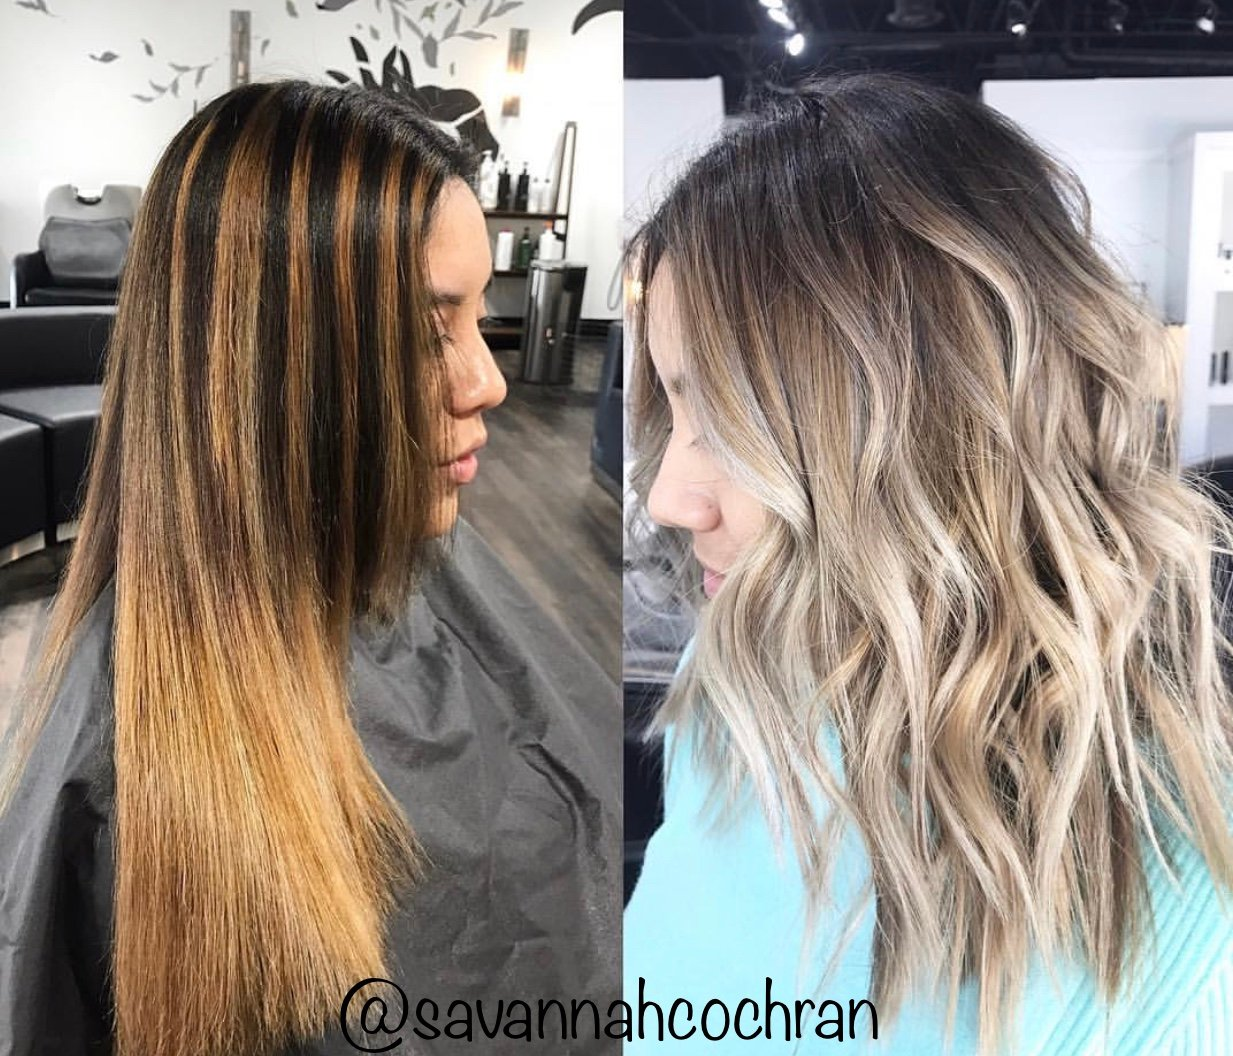 Color correction by Savannah Cochran, @savannahcochran.